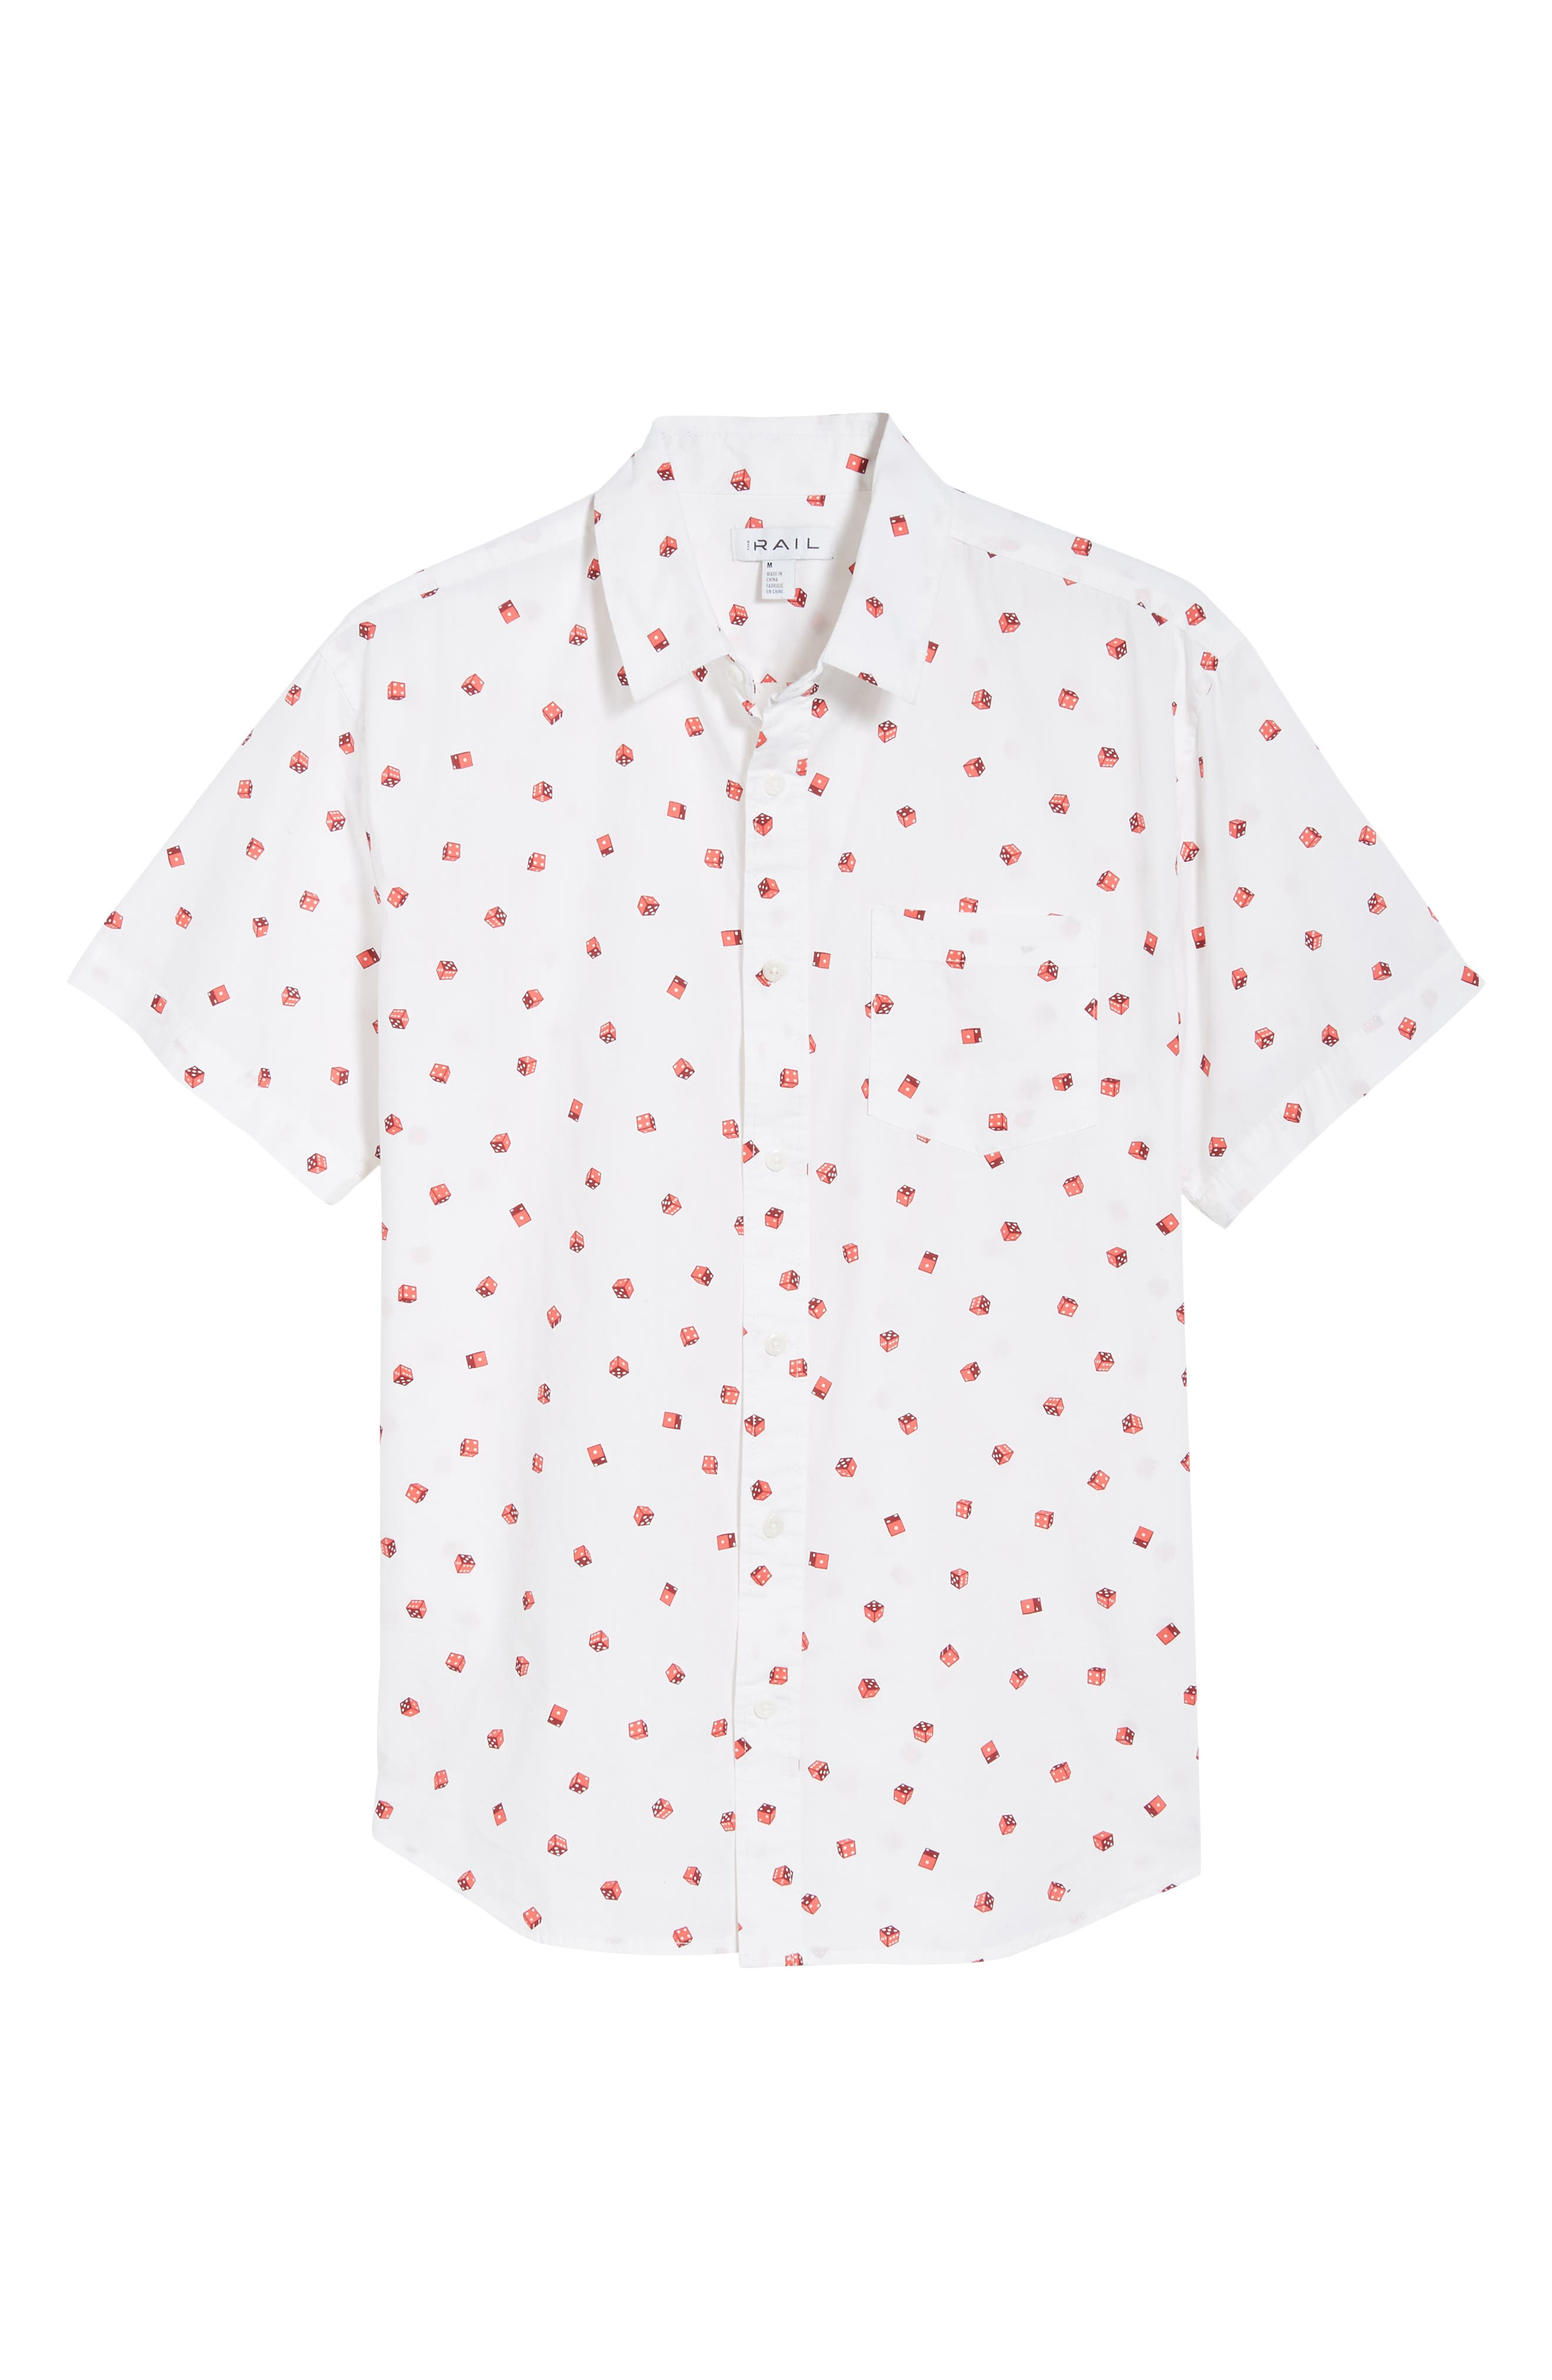 Print Camp Shirt,                             Alternate thumbnail 6, color,                             White / Red Rumba No Dice